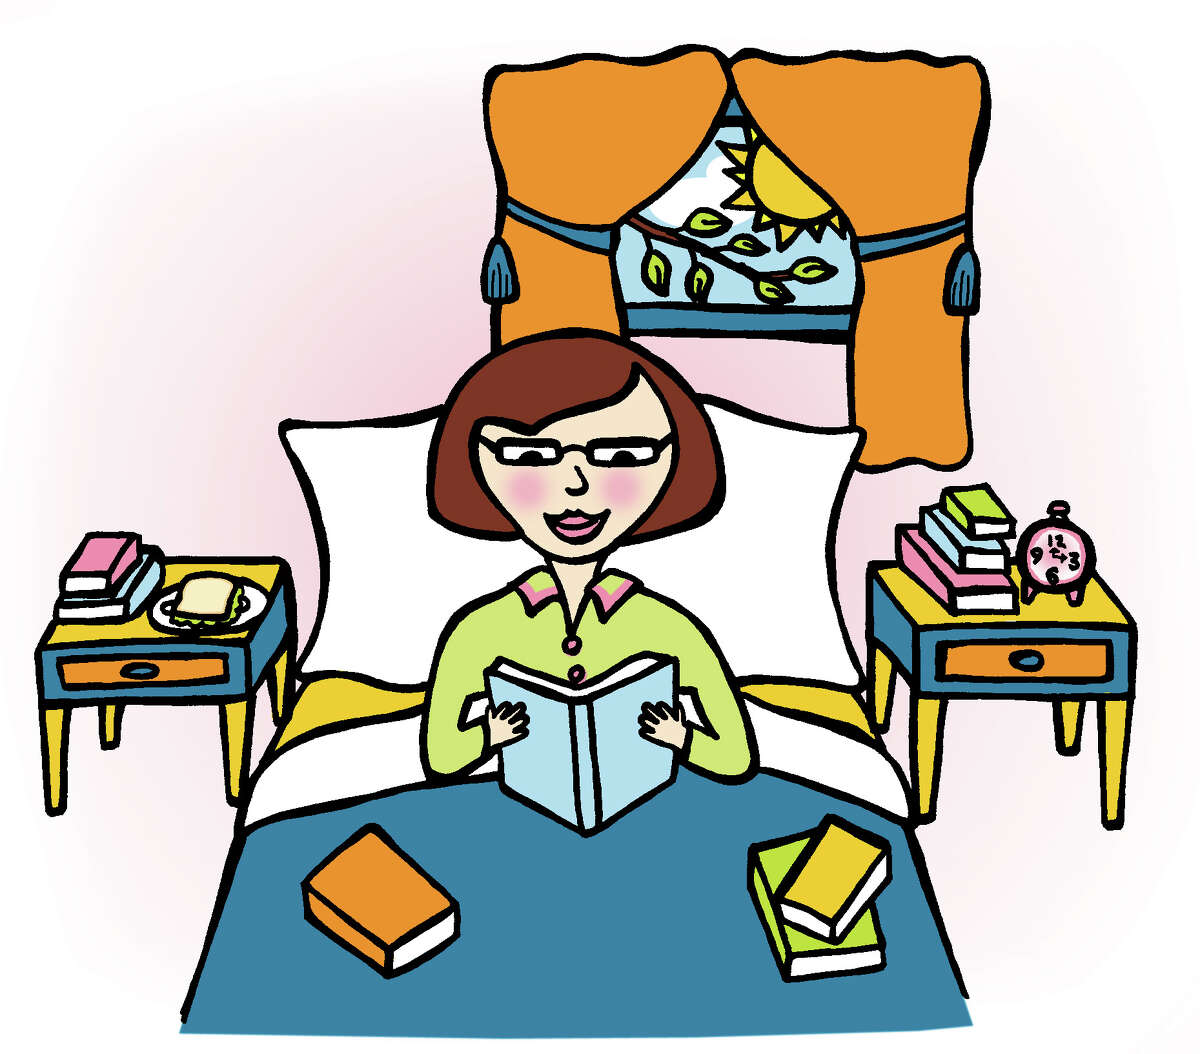 Times Union illustration by Maria M. Stoodley -- For Donna Liquori Biblio files column on reading books in bed all day. For 01/21/07 Sunday Travel Books cover.